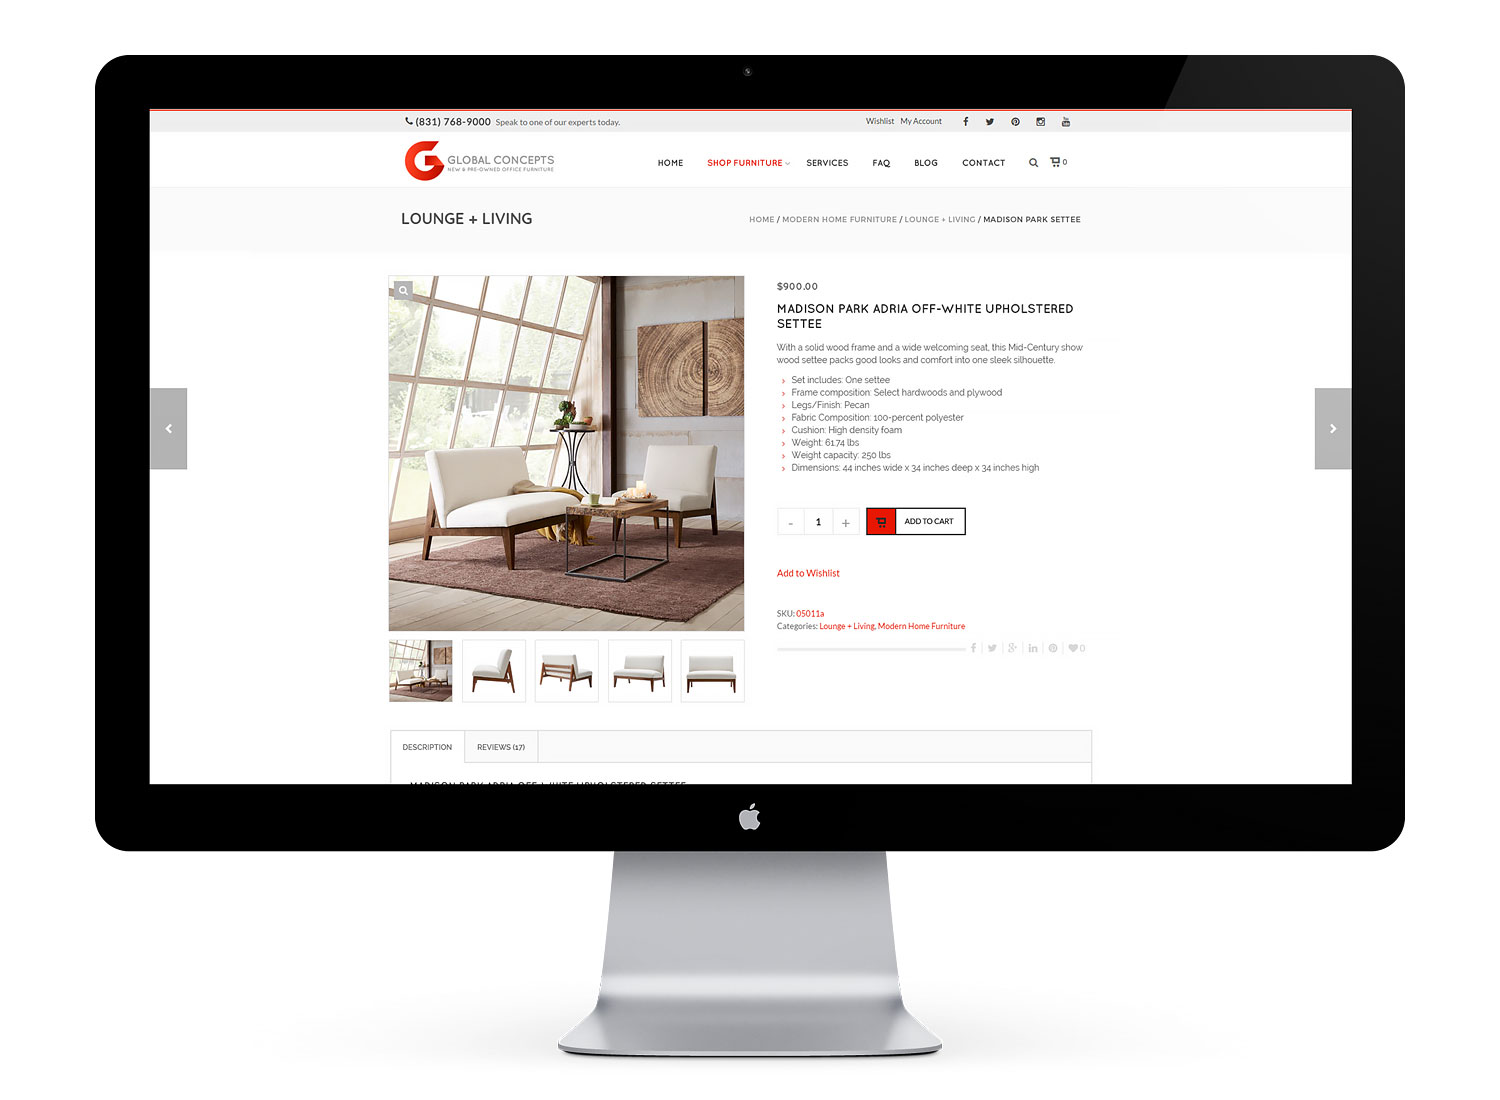 Global Concepts eco friendly furniture website